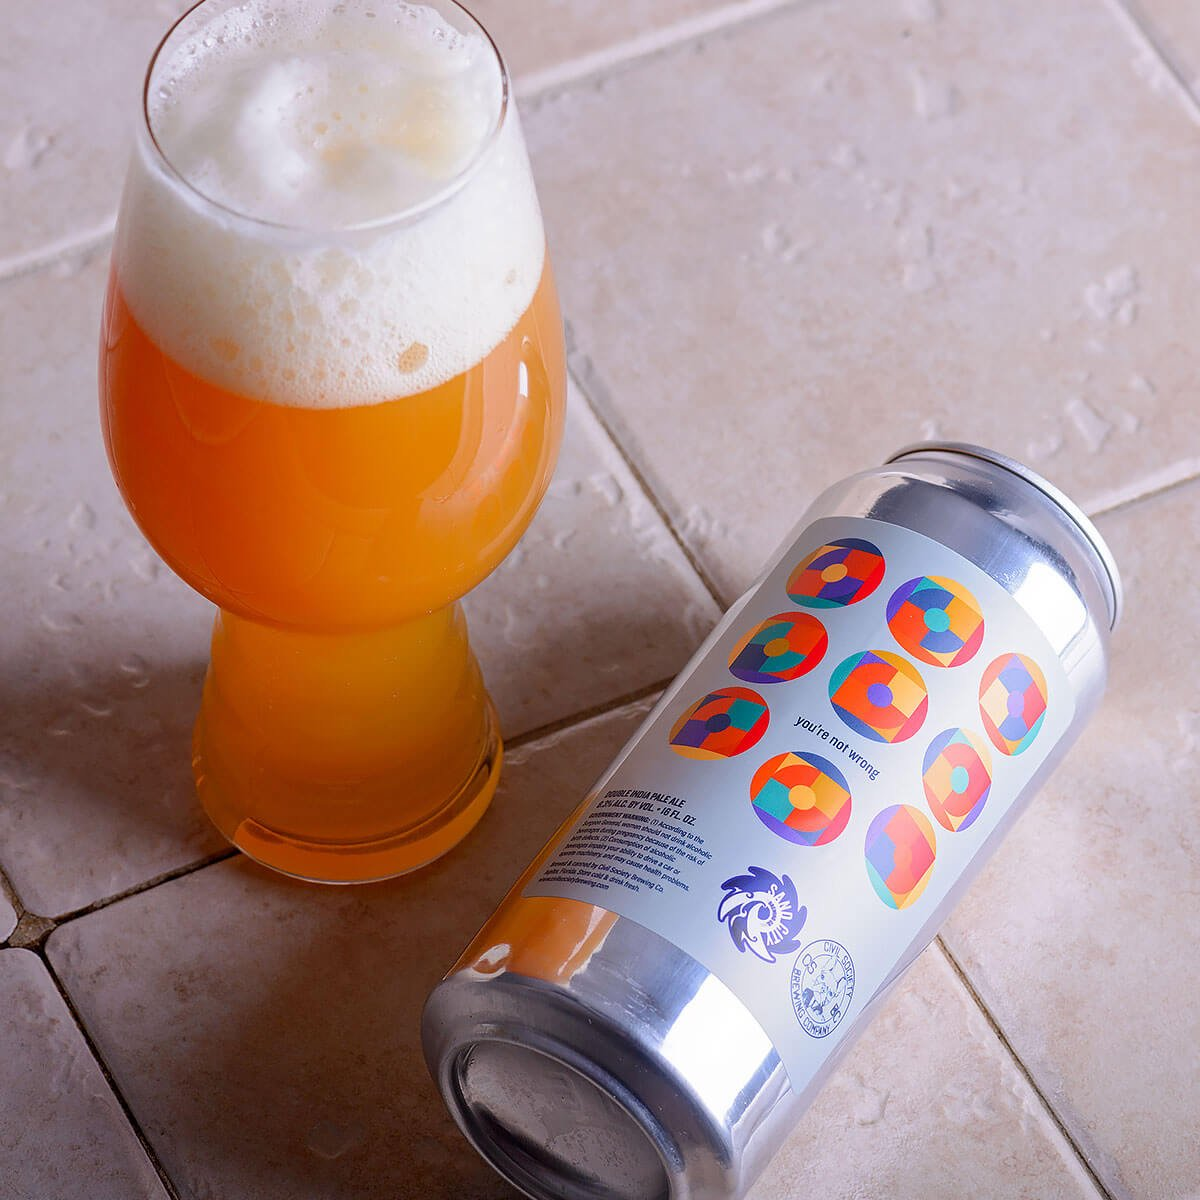 You're Not Wrong, an American Double IPA collaboratively brewed by Civil Society Brewing Co. and Sand City Brewing Co.